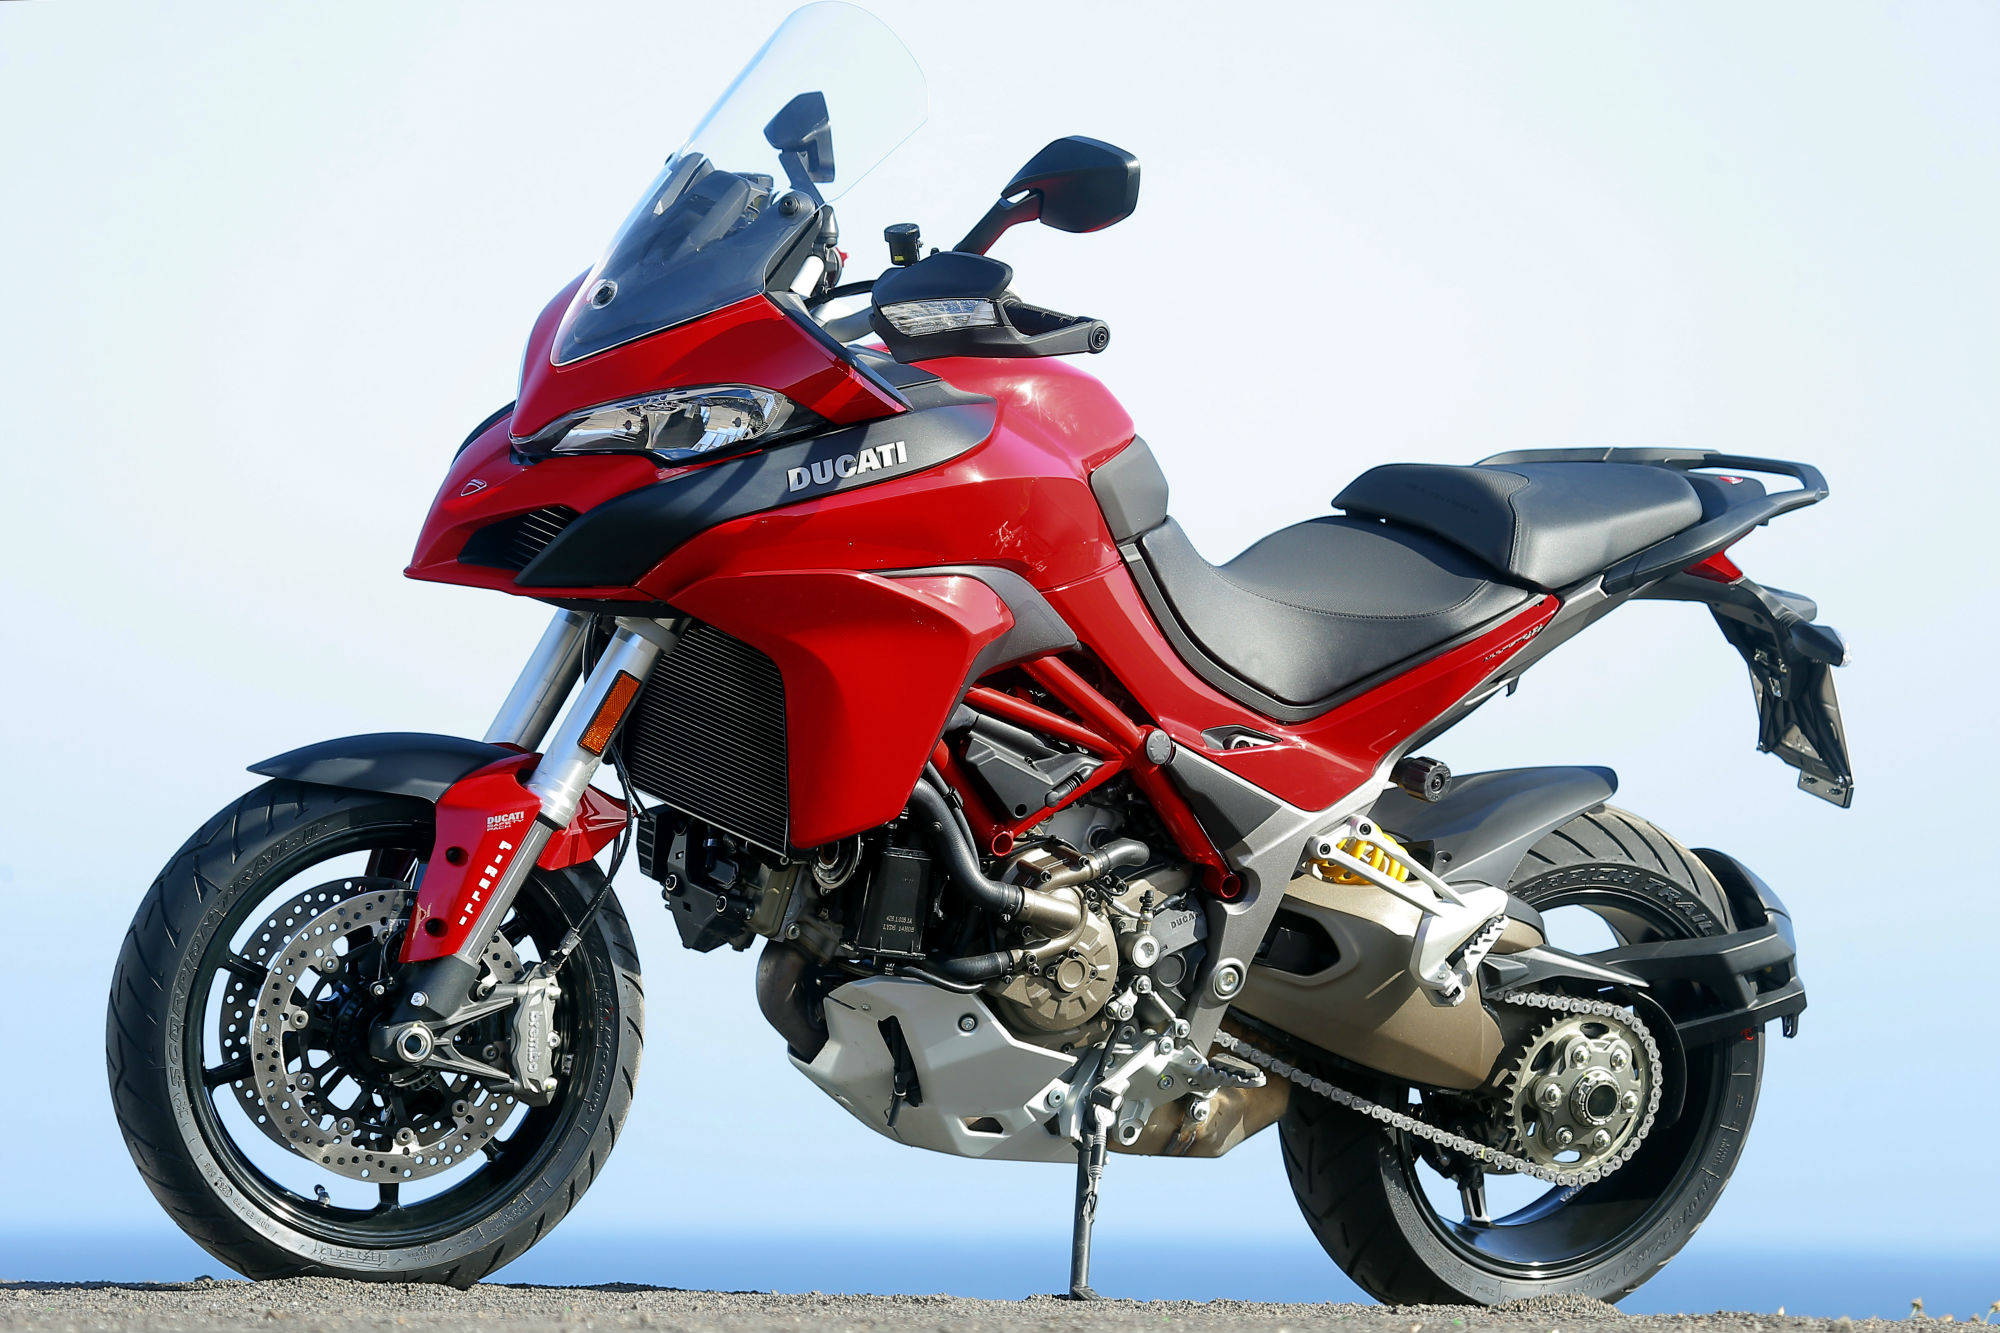 Ducati Touring Motorcycle Price